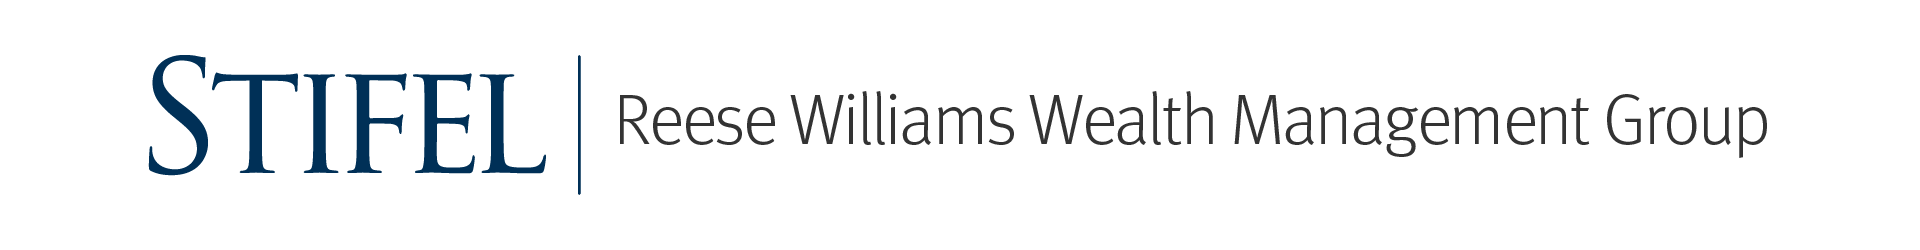 Reese Williams Wealth Management Group |  Sugar Land, TX